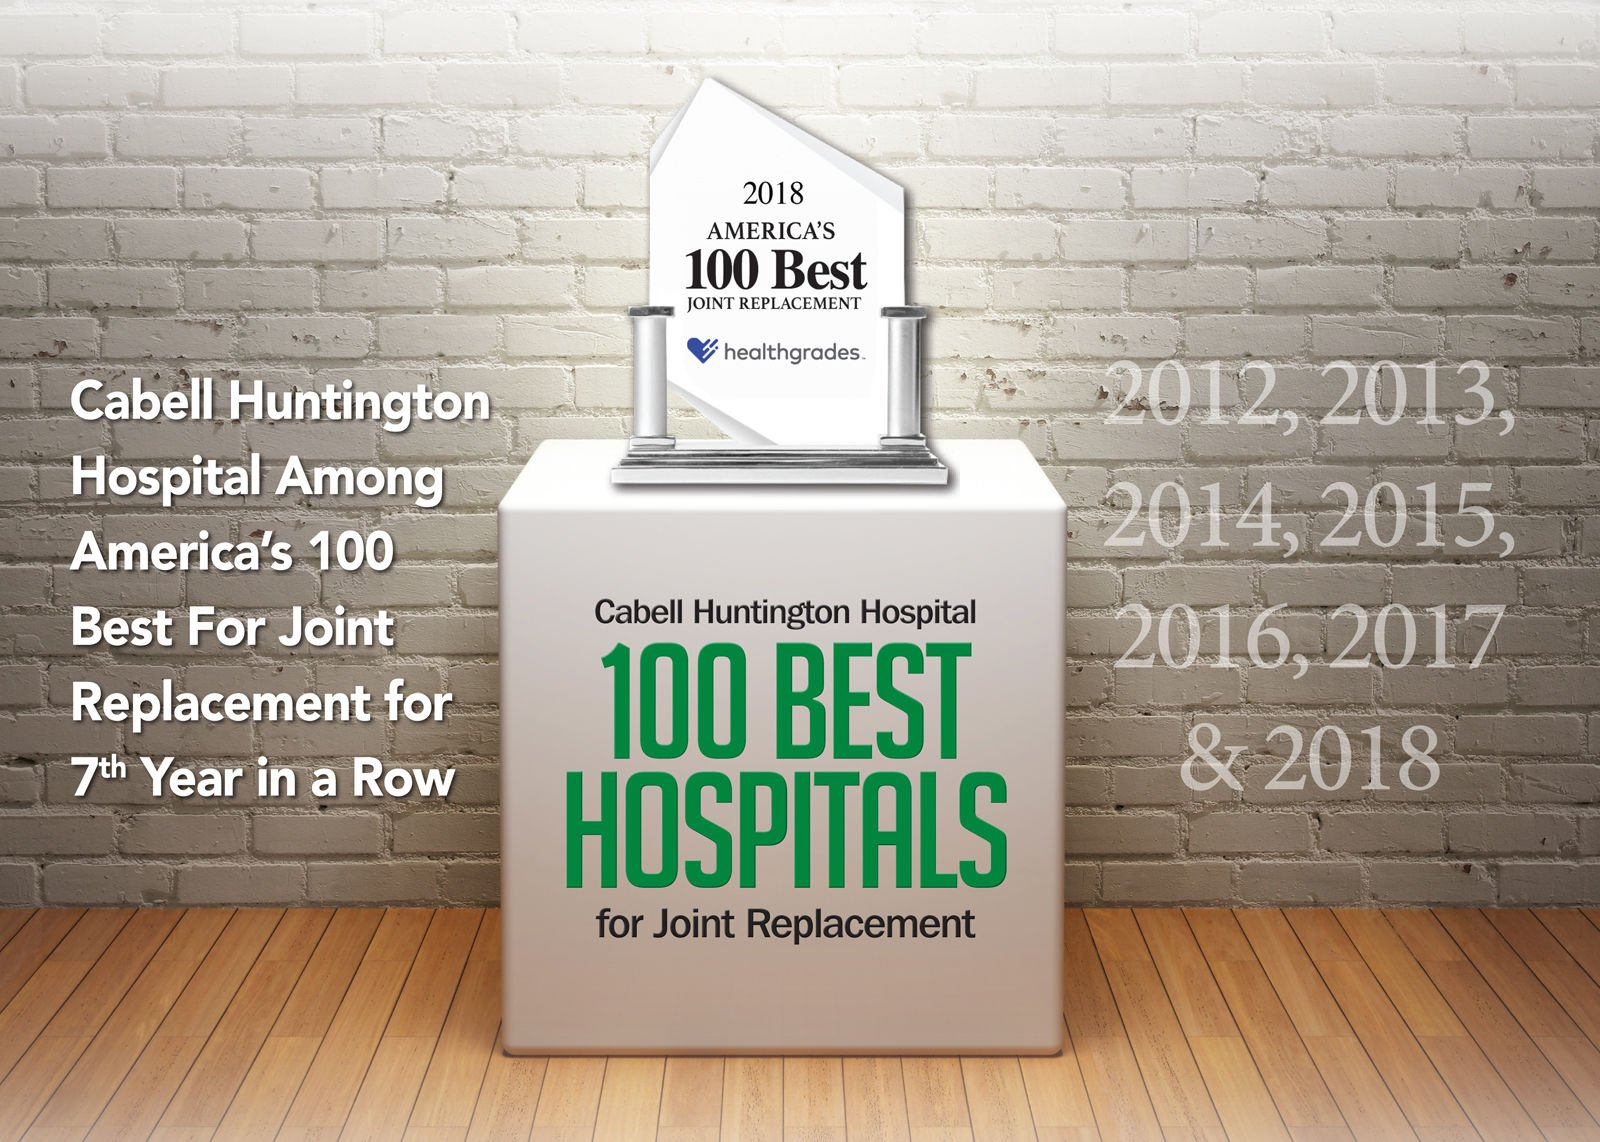 2018 100 best hospitals CHH Top in